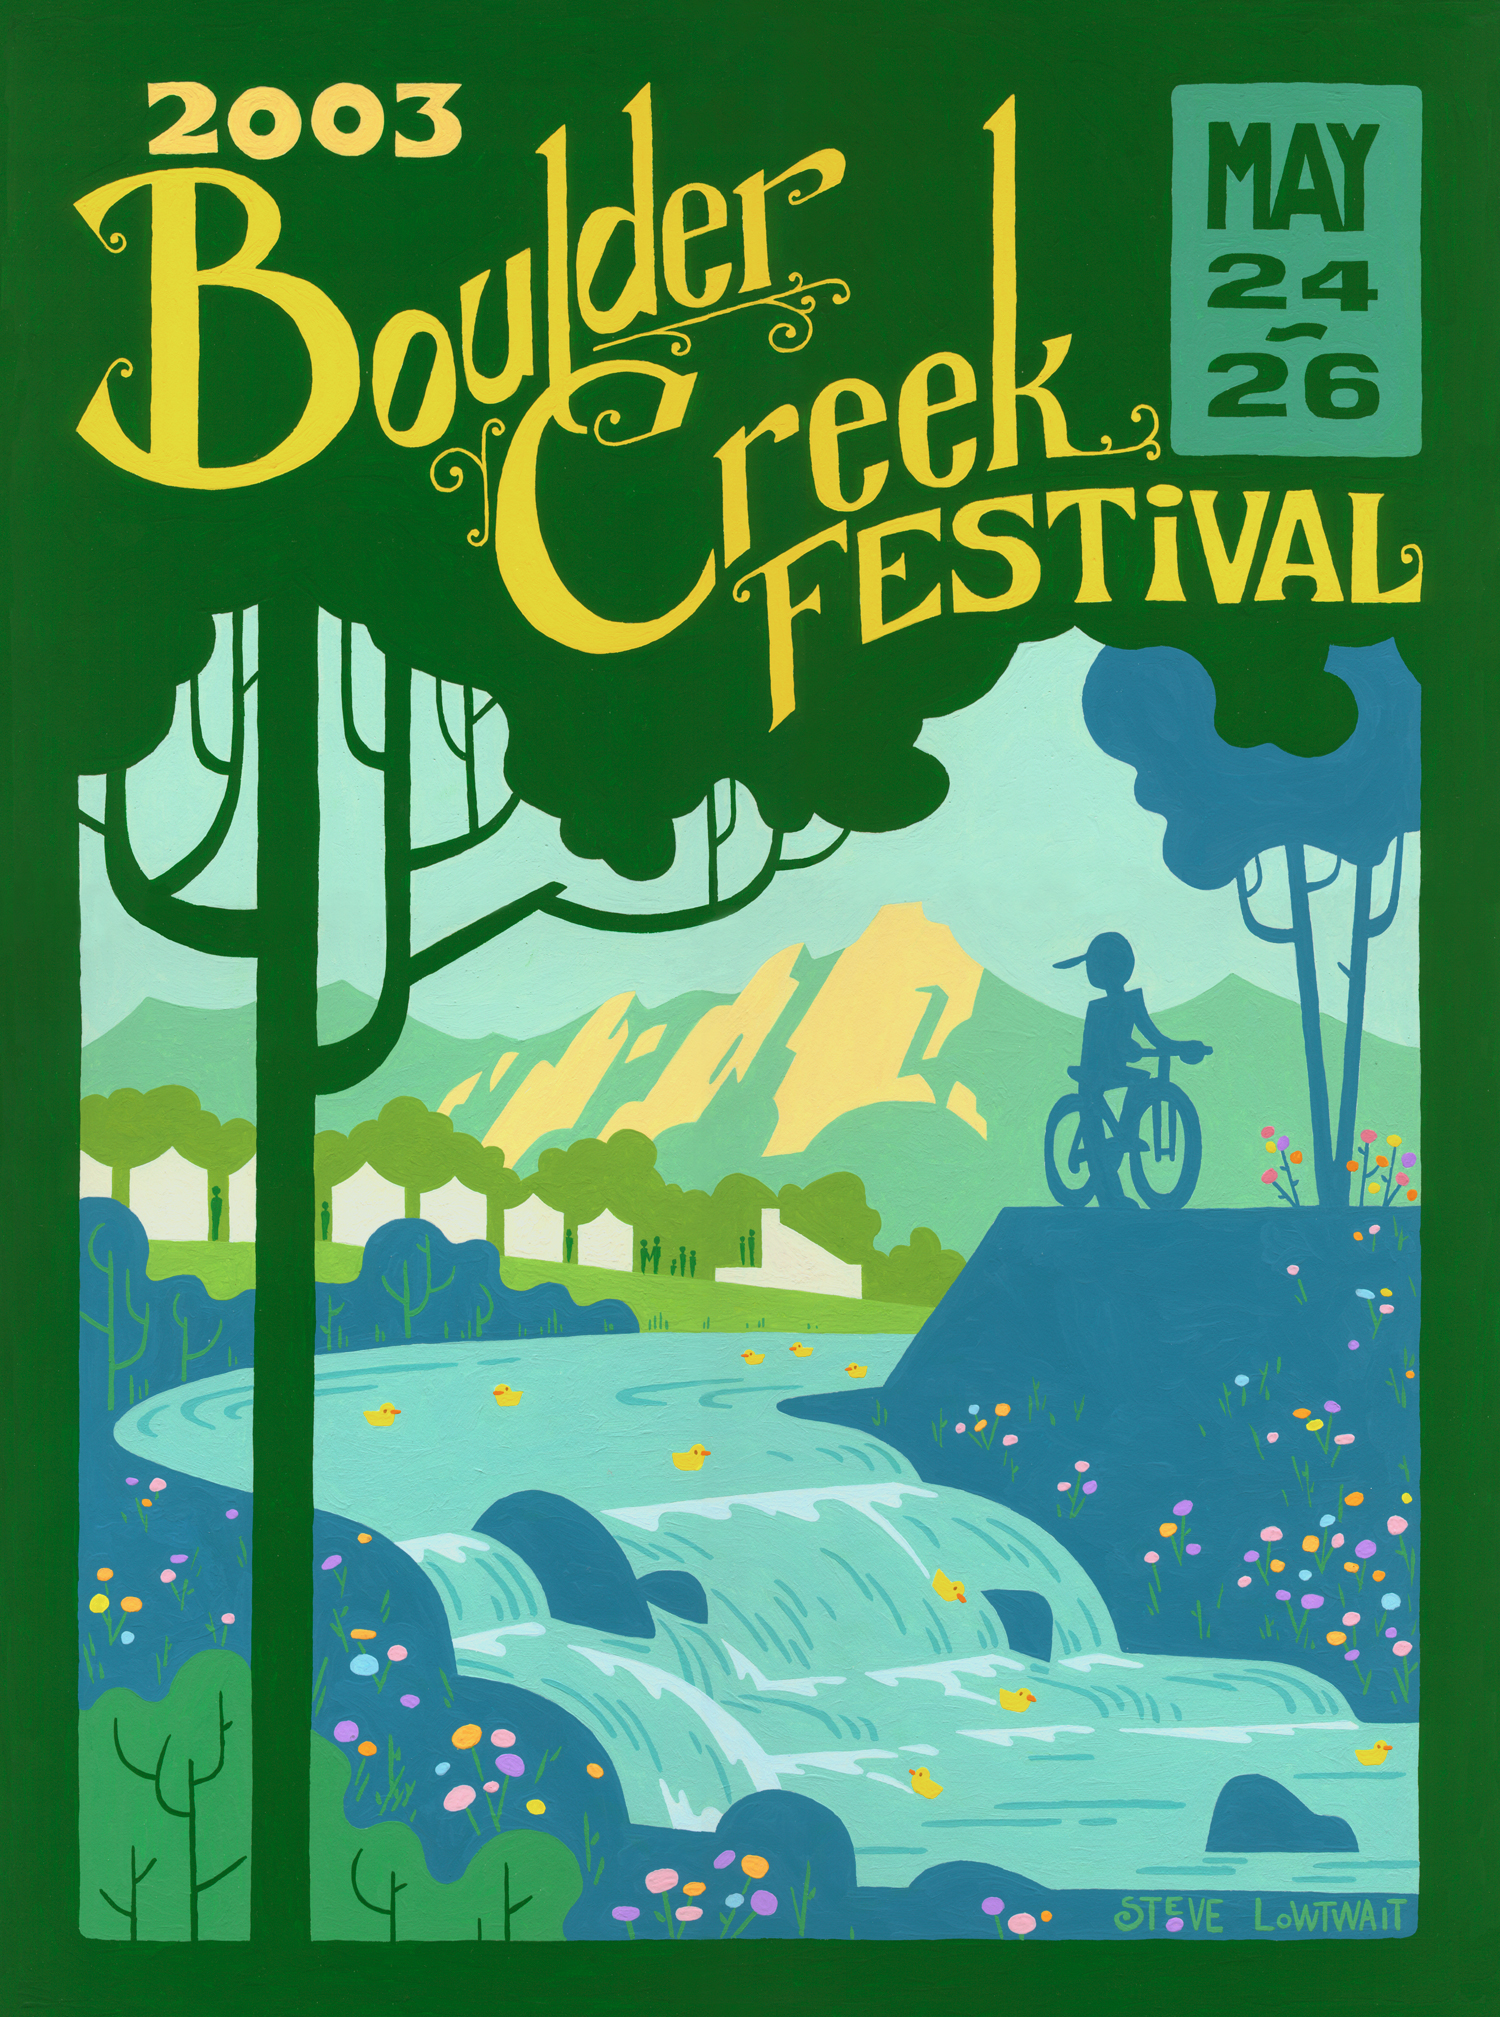 Boulder Creek Festival • One of my first poster commissions, this poster promoted the big annual festival on Memorial Day weekend.  Client: Boulder Creek Events